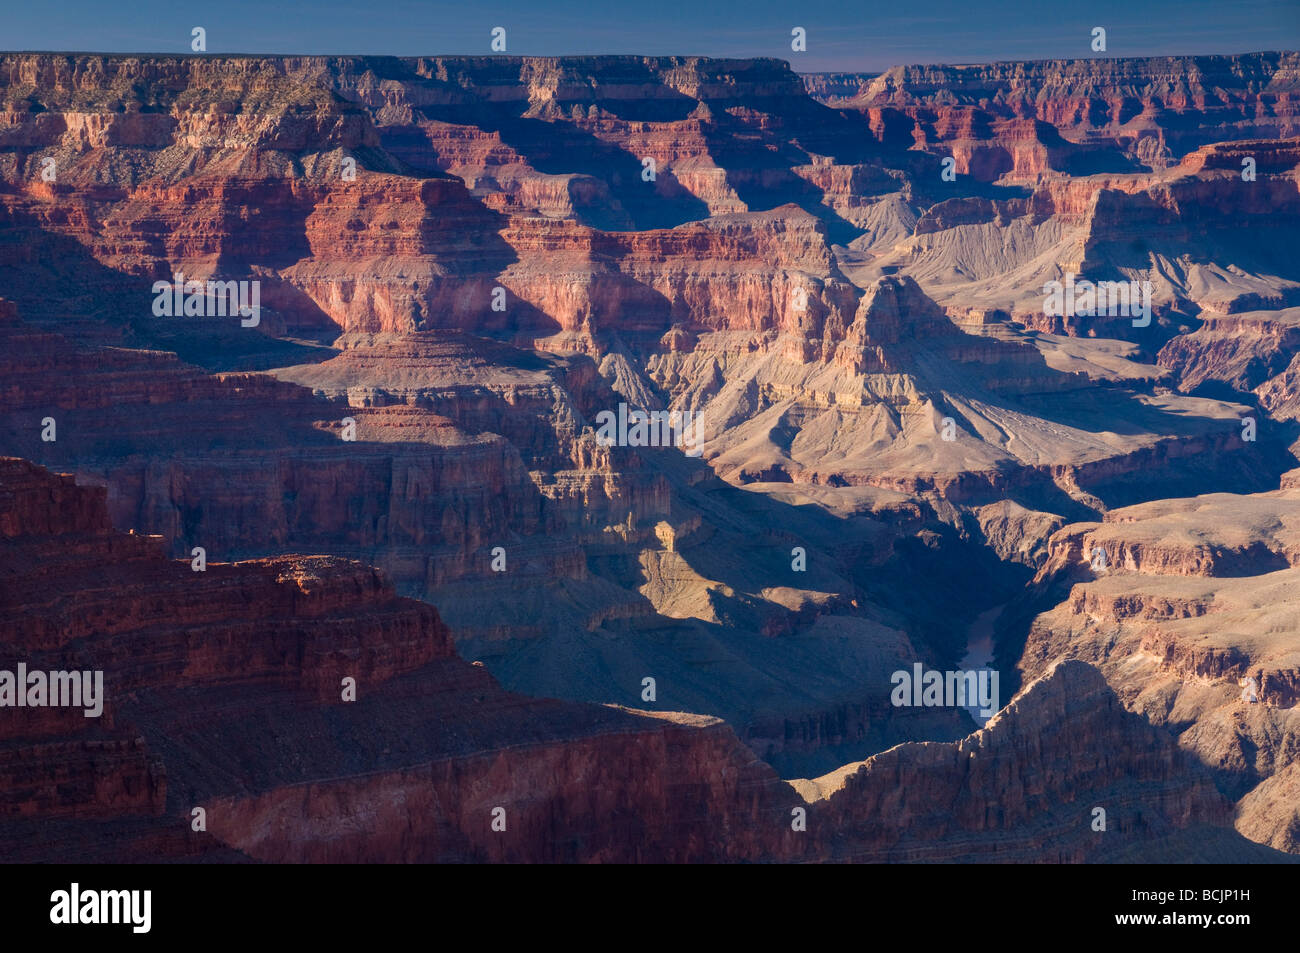 USA, Arizona, Grand Canyon, from above The Abyss - Stock Image